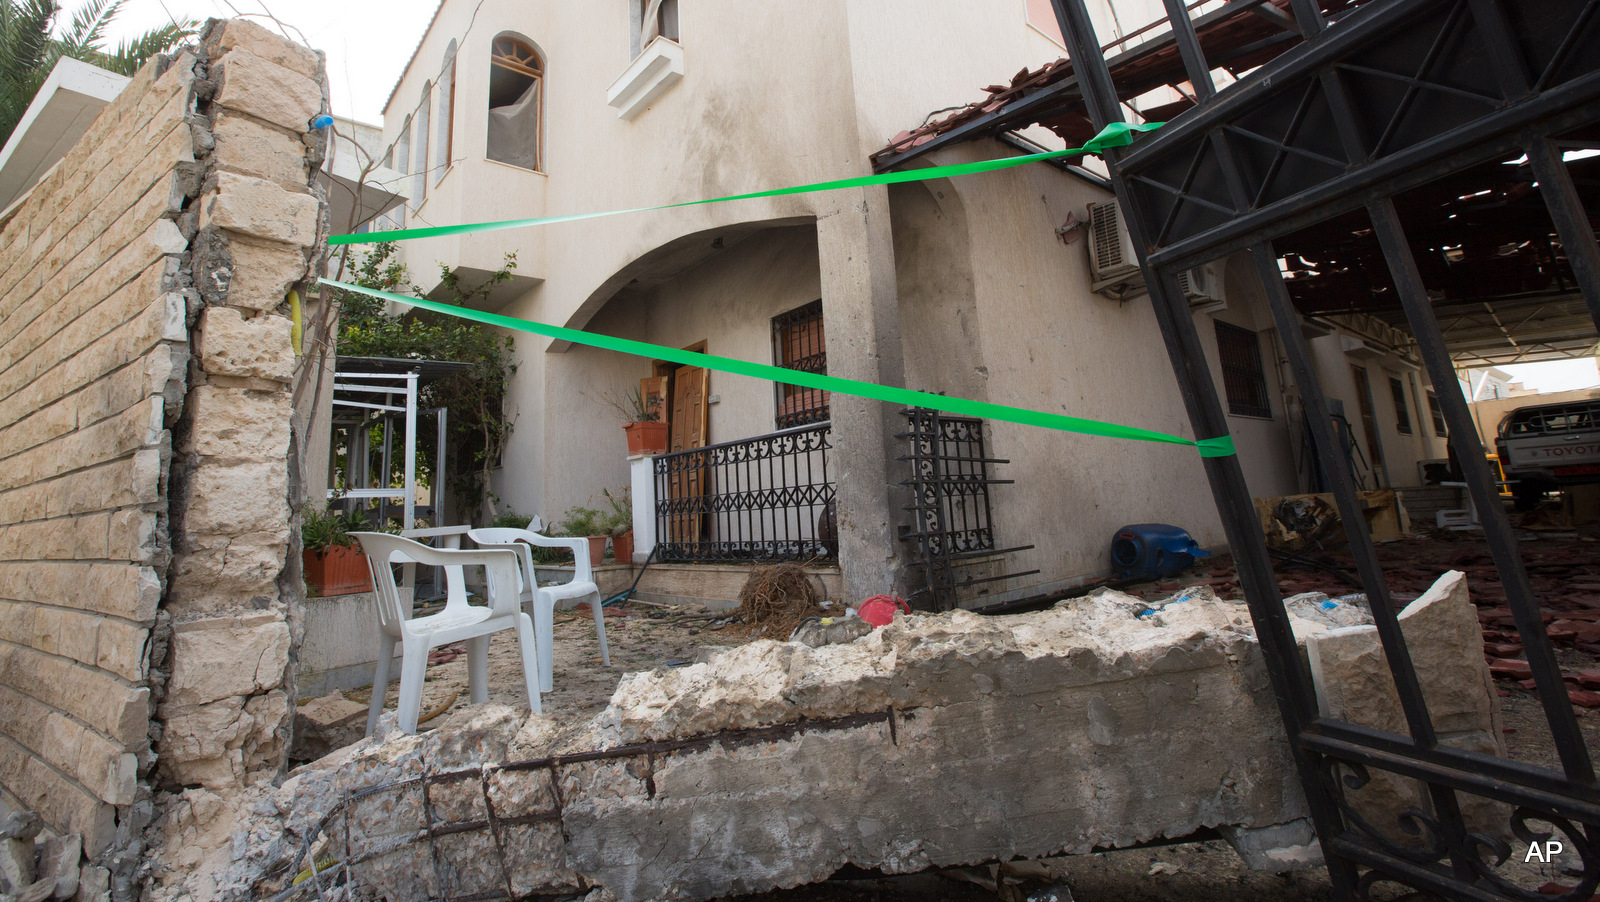 Police tape secures the Iranian ambassador's house after it received minor damage from an improvised explosive device placed among garbage bags, in Libya's capital, Tripoli, Libya, Sunday, Feb. 22, 2015.